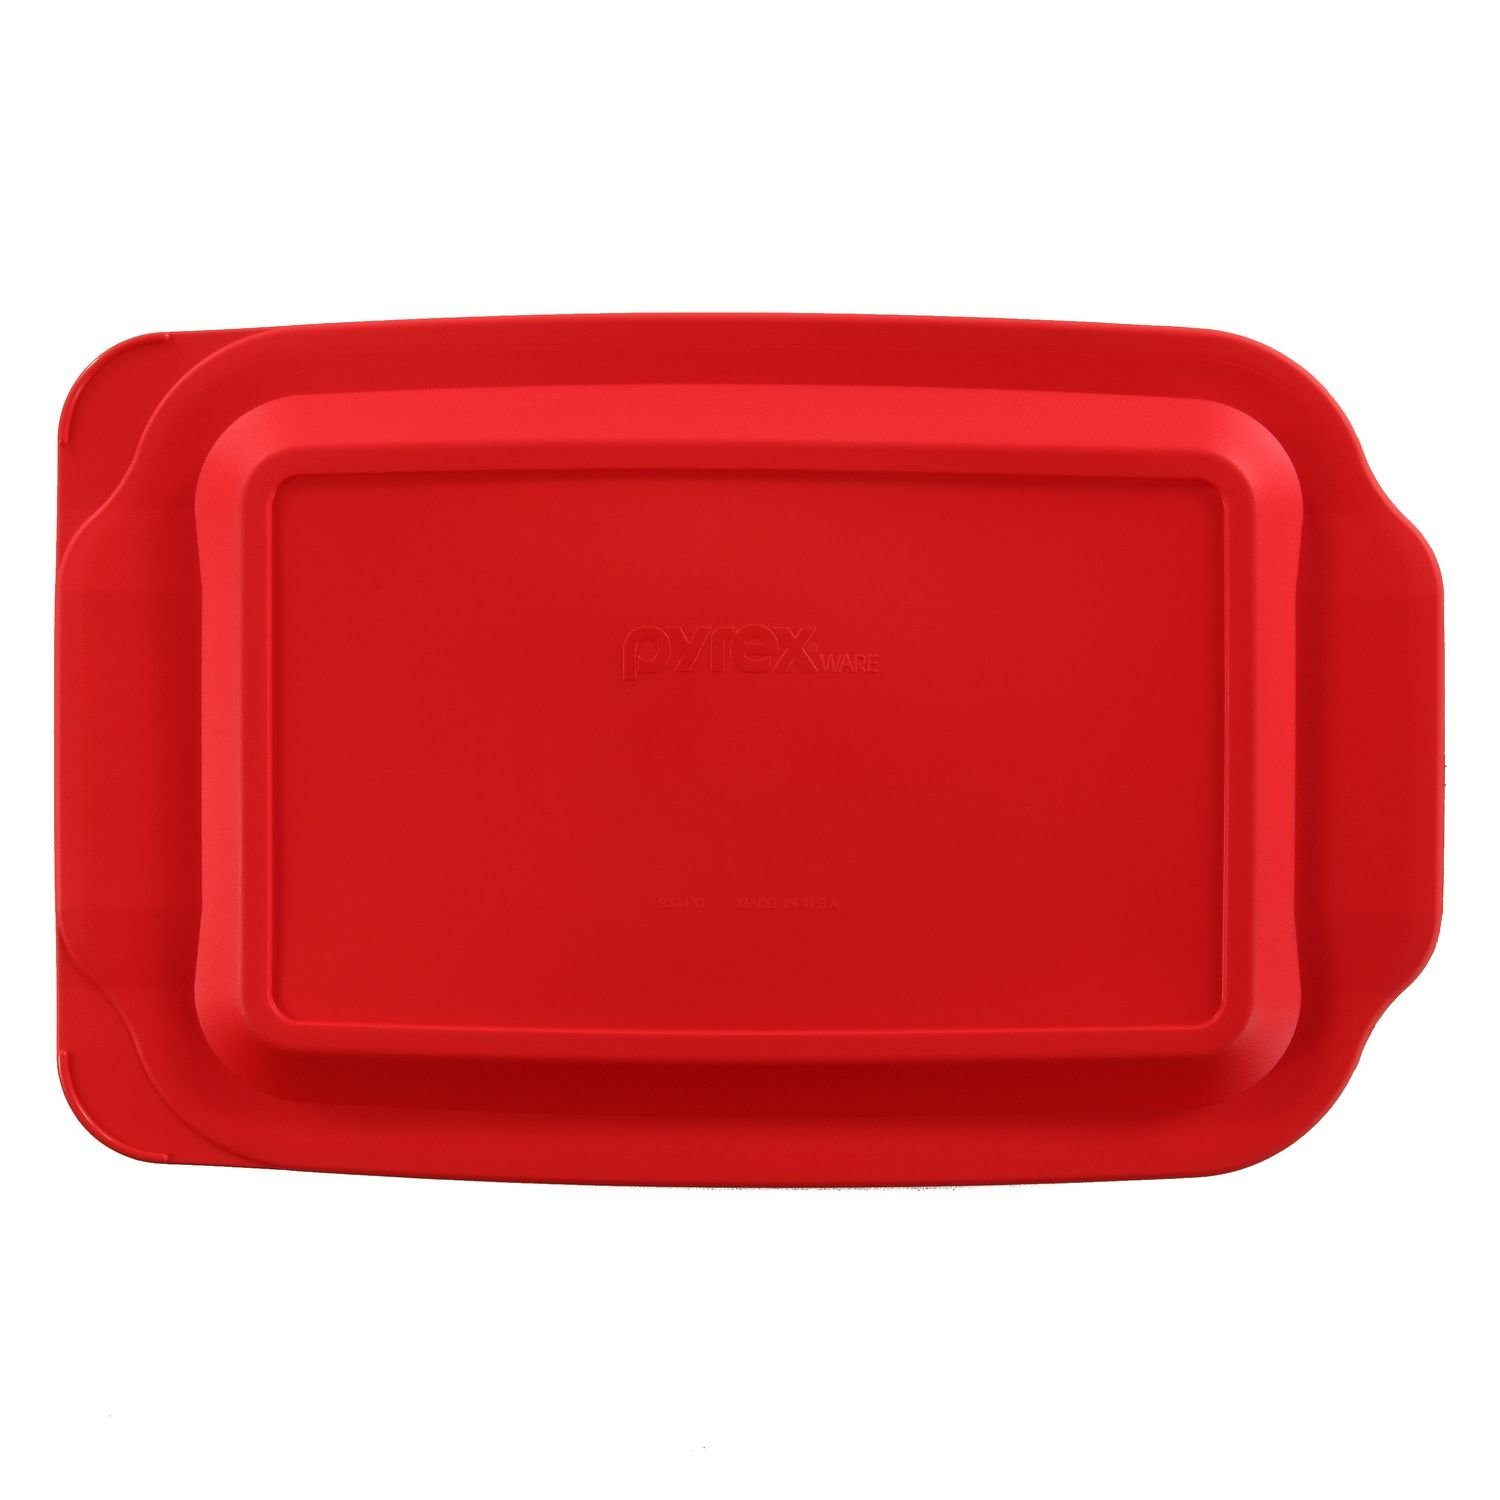 7 inch x 11 Inch by Pyrex Pyrex Basics 2 Quart Glass Oblong Baking Dish with Red Plastic Lid